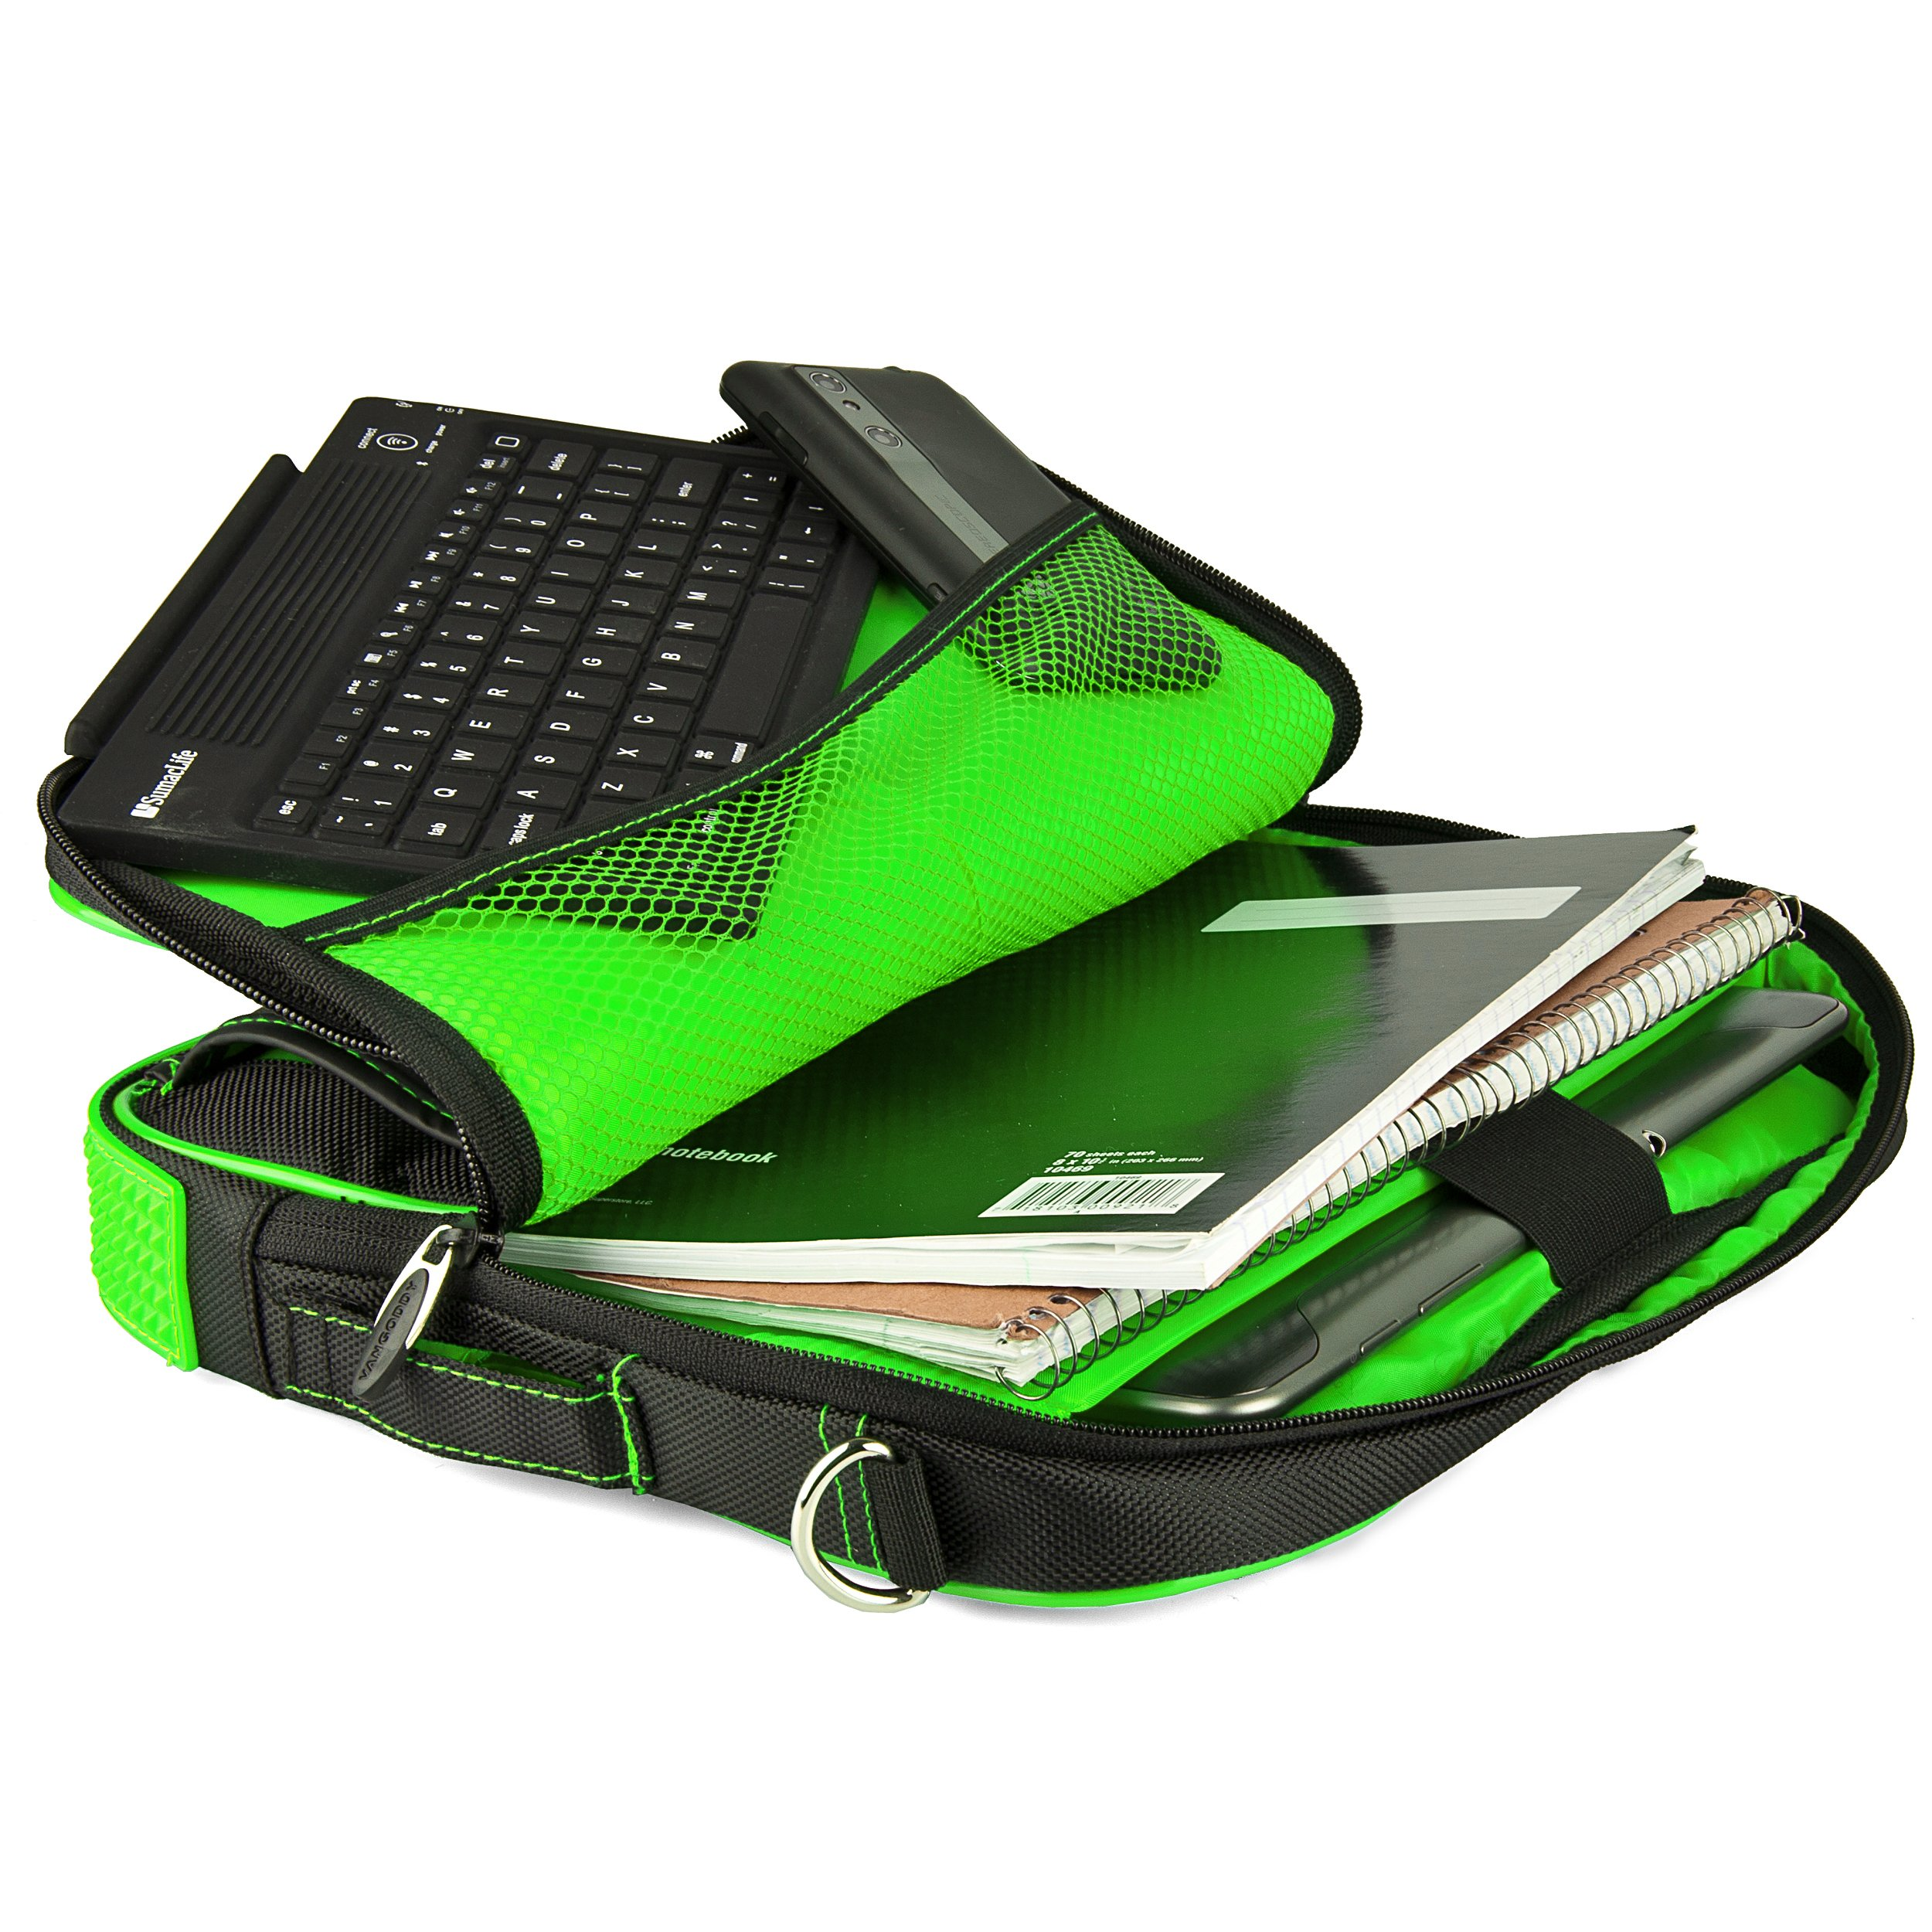 VanGoddy Pindar Messenger Carrying Bag for Samsung Galaxy Note PRO 12.2/Samsung Galaxy Tab PRO 12.2'' Tablets + Bluetooth Keyboard + Headphones (Green) by Vangoddy (Image #4)